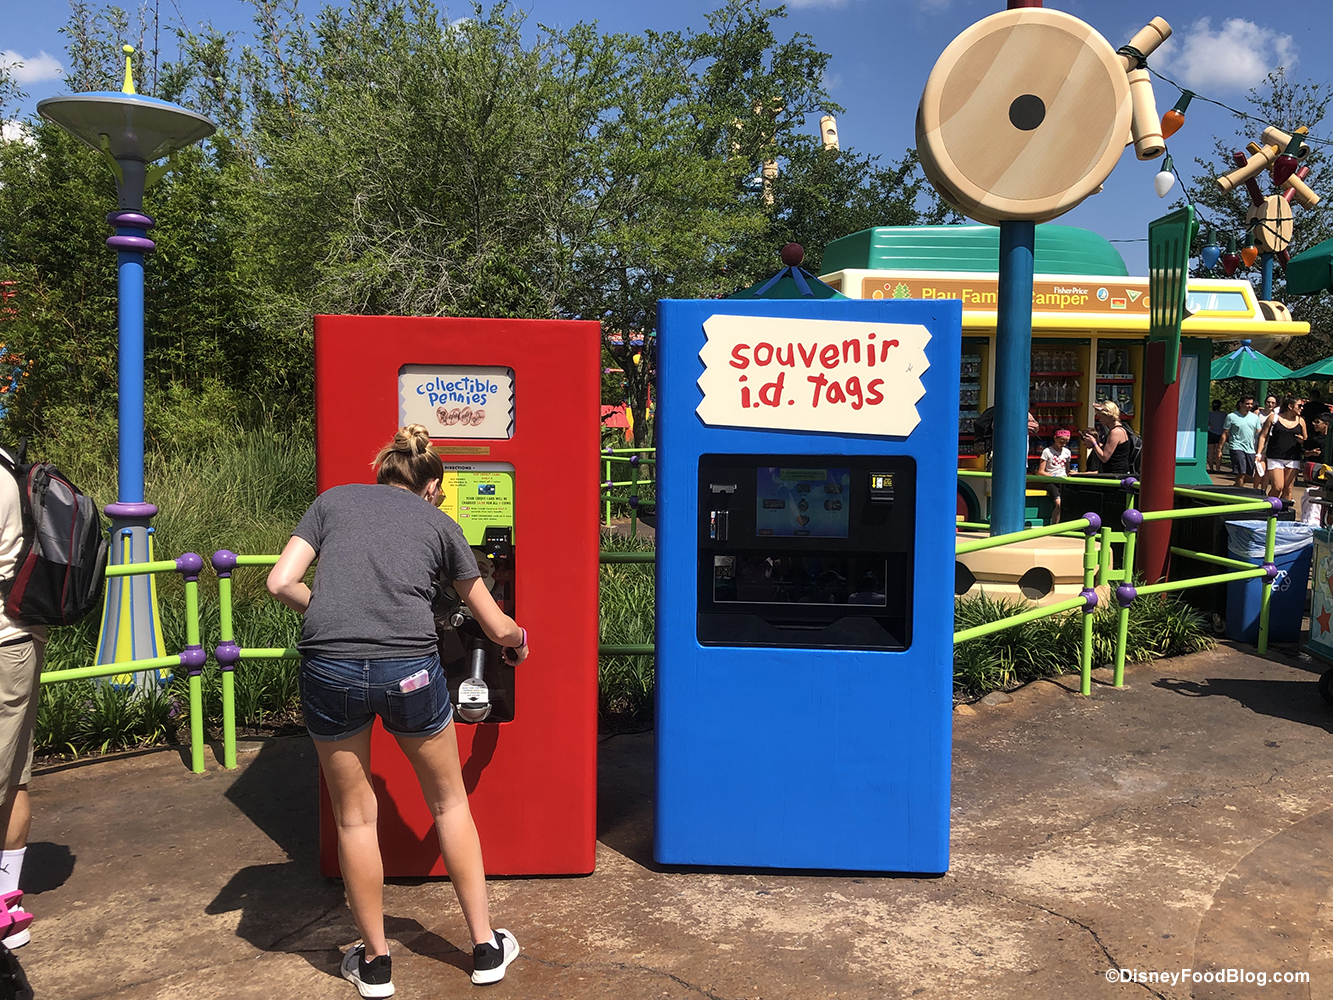 What's New at Disney's Hollywood Studios: Toy Story Merch